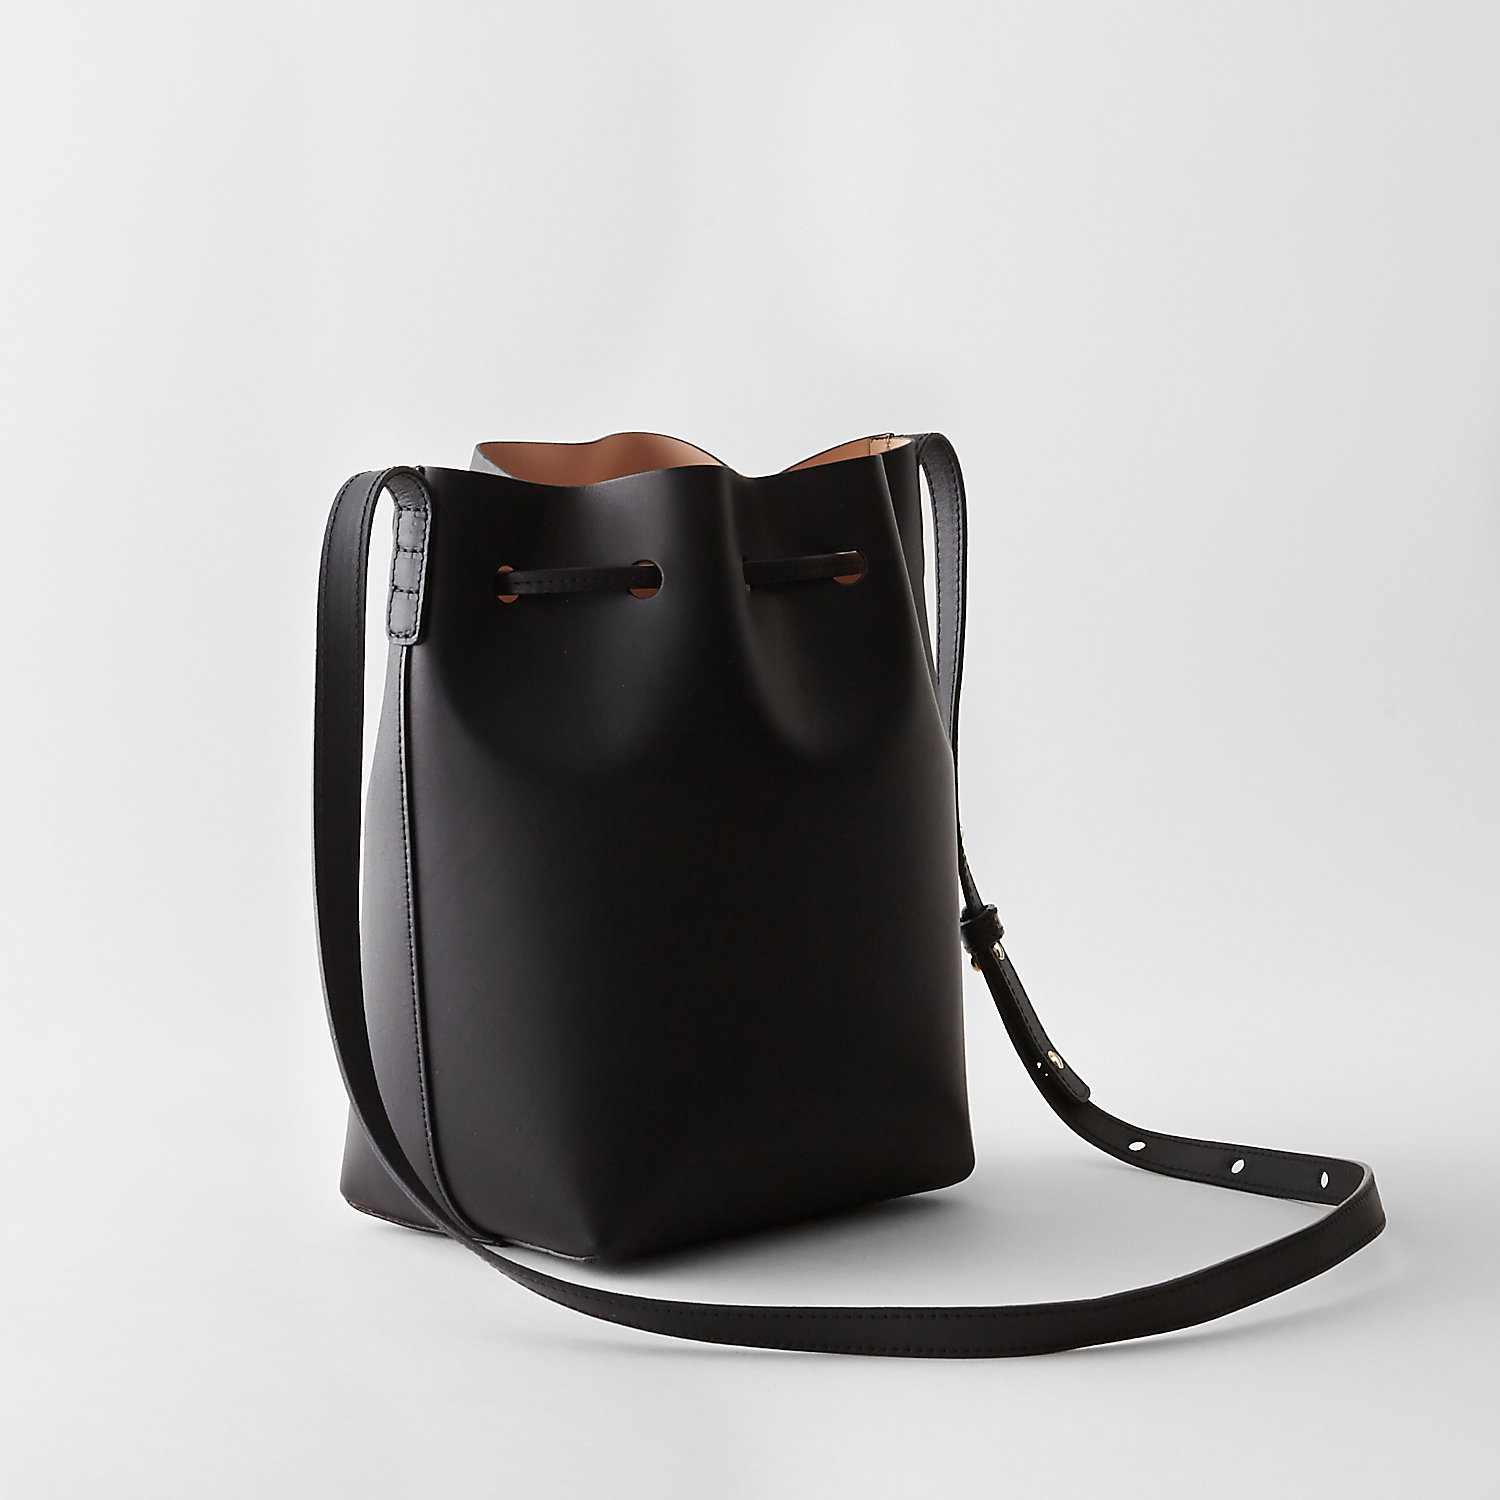 mansur gavriel mini bucket bag in black black ballerina. Black Bedroom Furniture Sets. Home Design Ideas